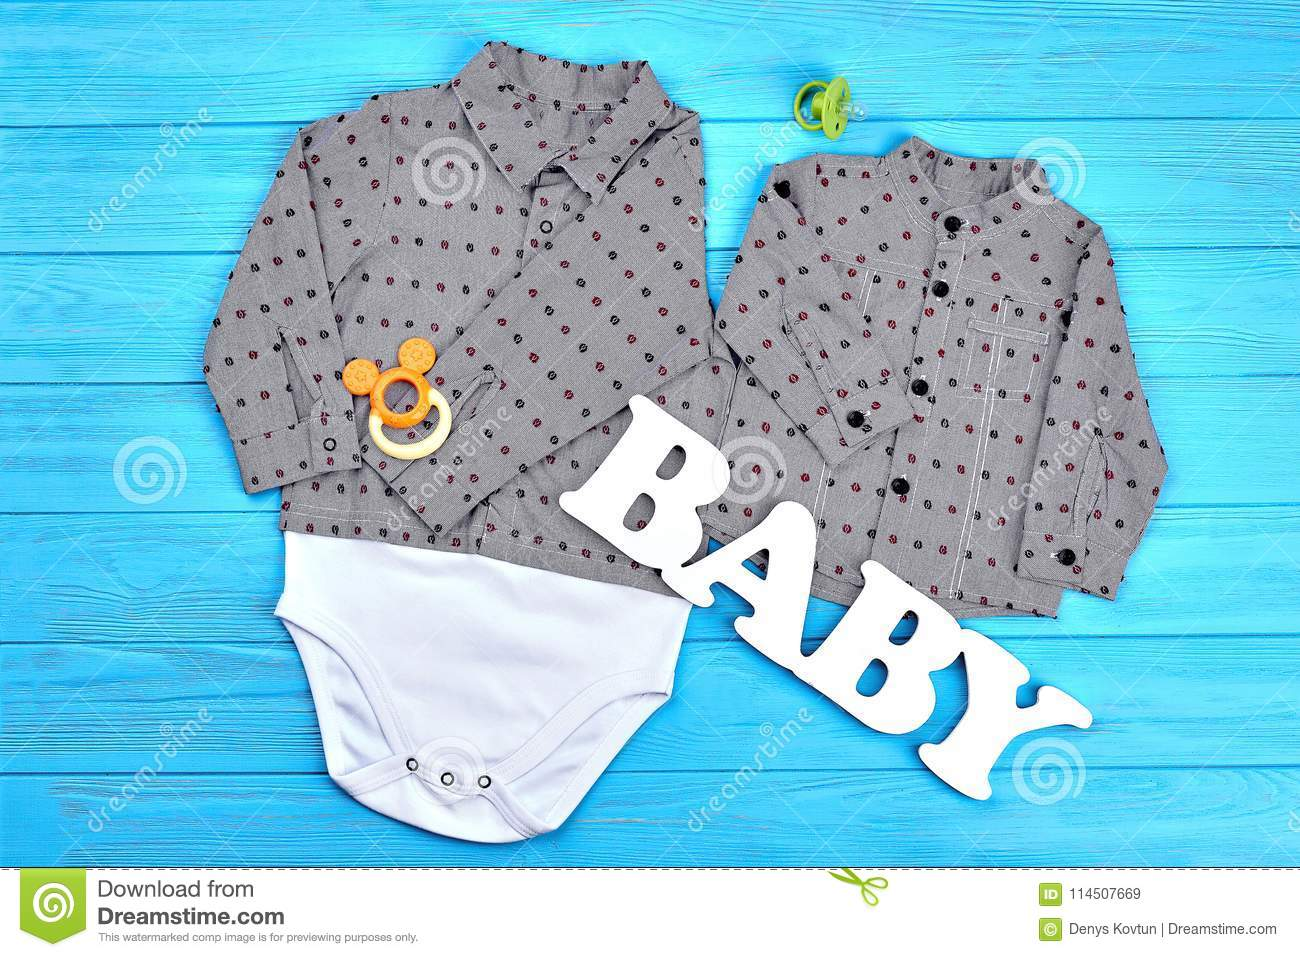 f3c51f98c3f2 Baby-boy Adorable Cotton Garment. Stock Image - Image of background ...